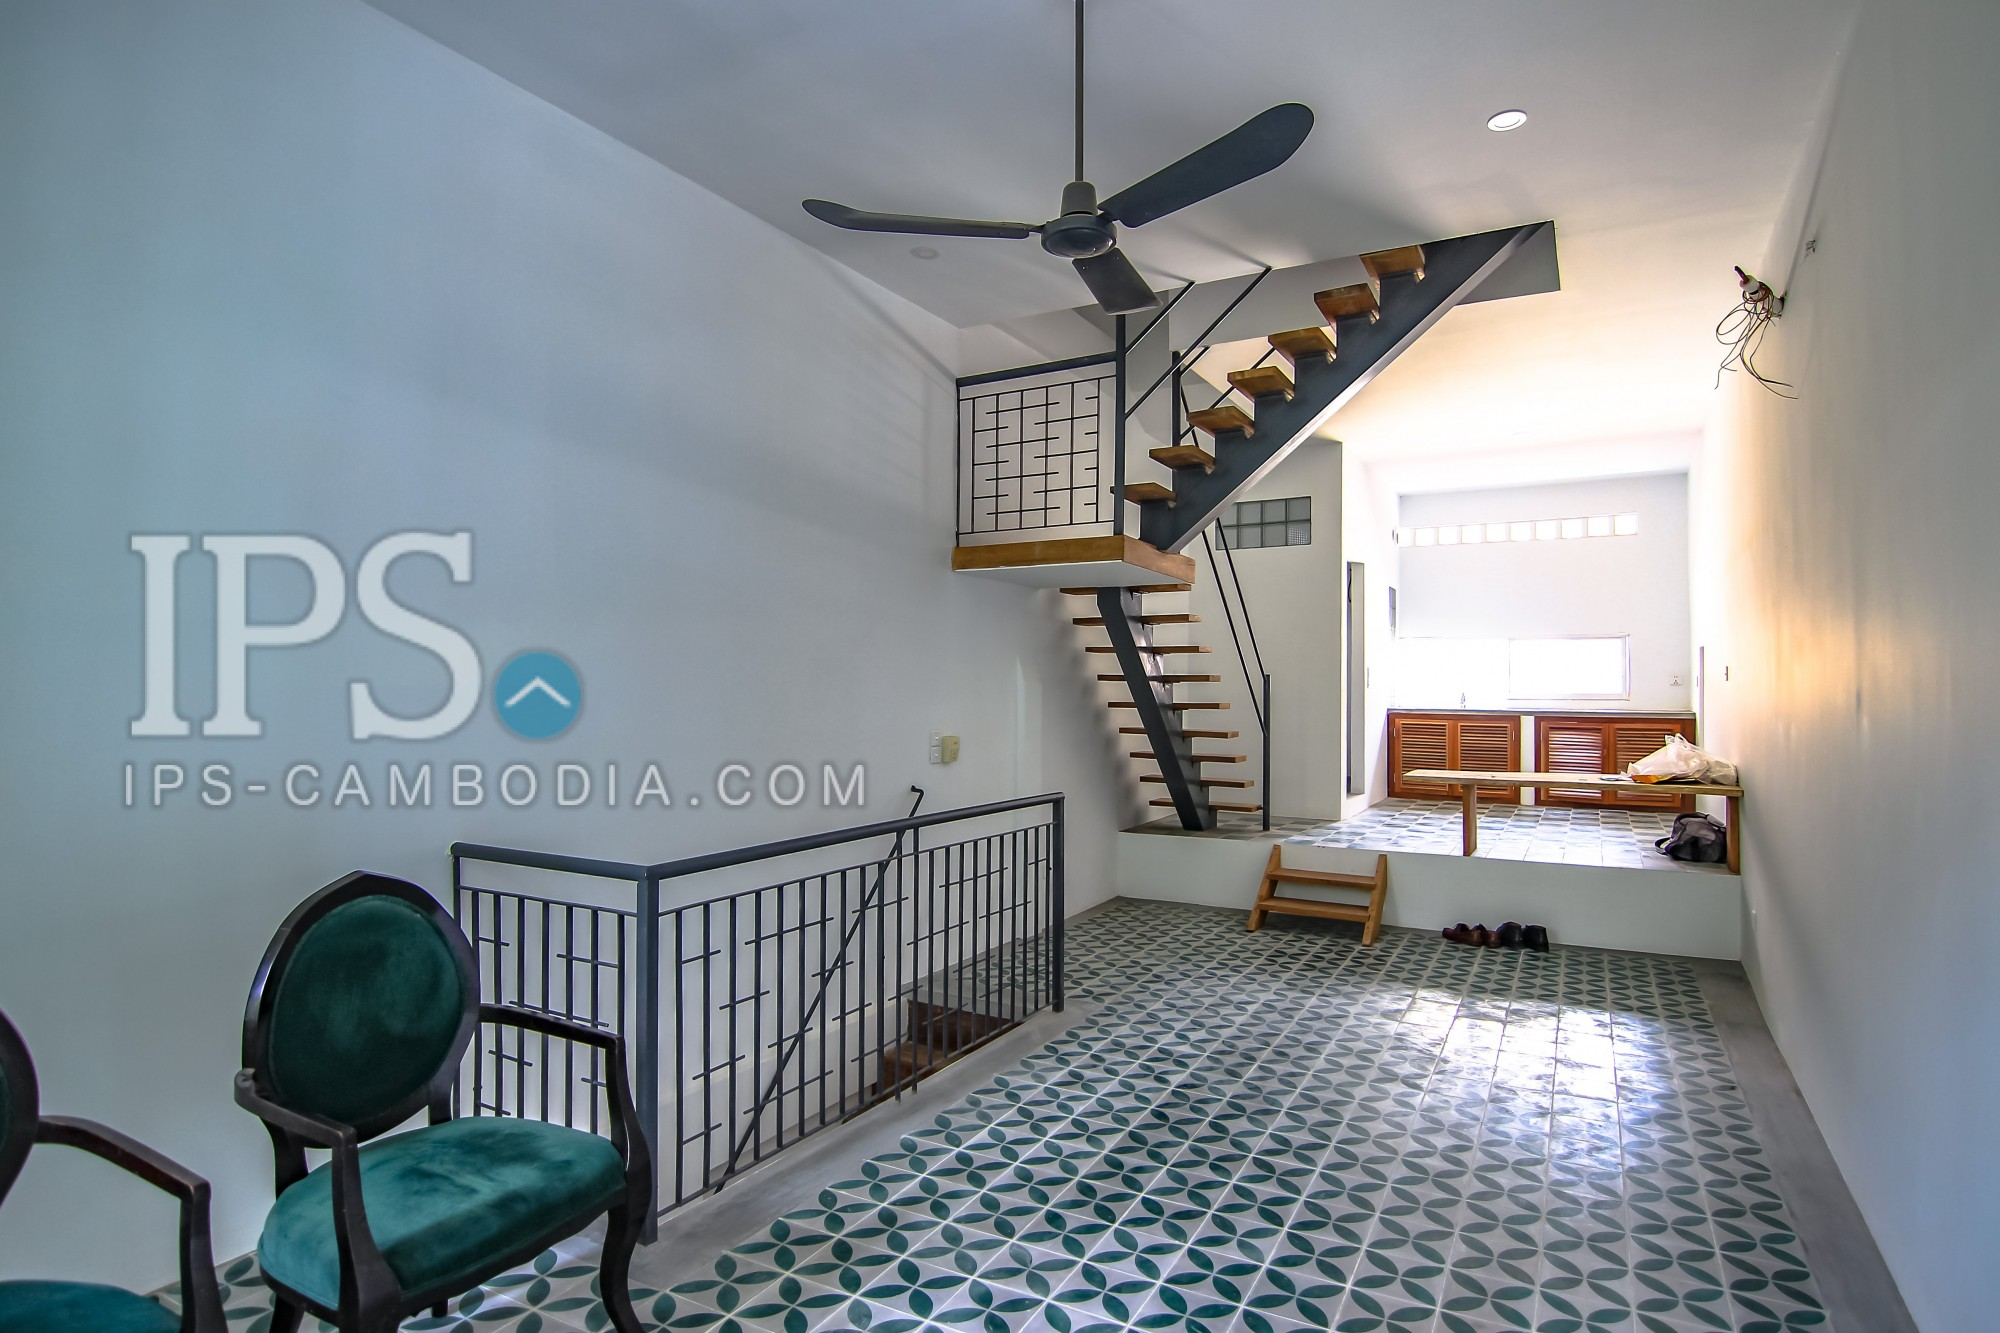 2 Bedroom Duplex Flat for Rent -  Sothearos Blvd.